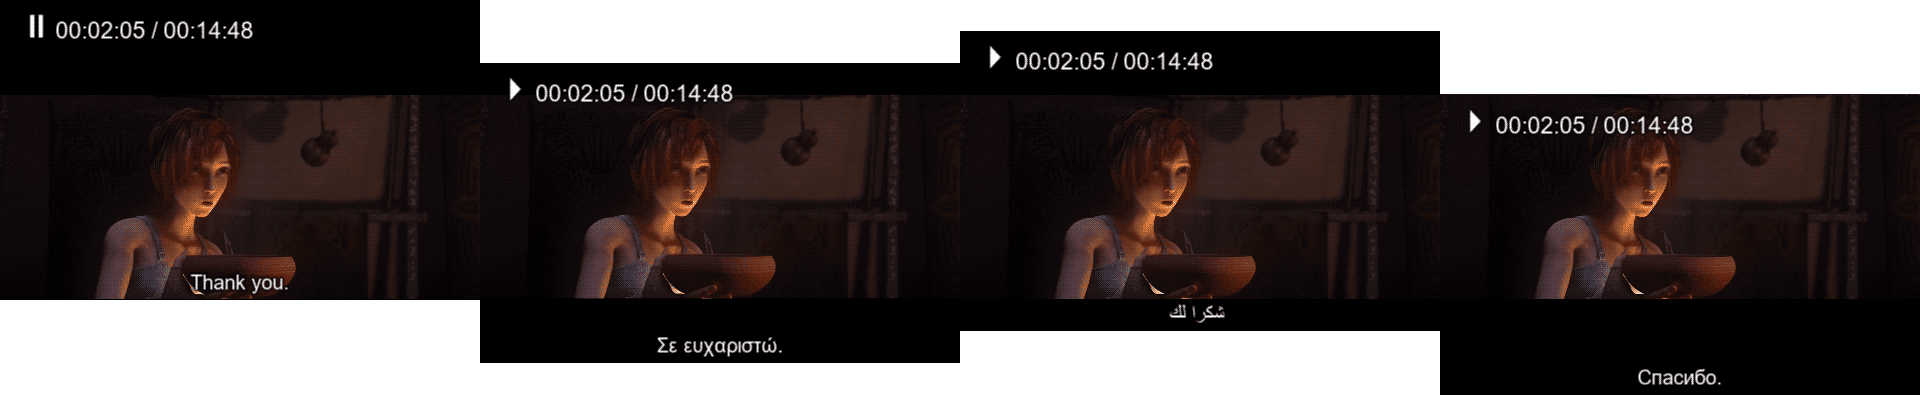 Screenshot of a film with 21:9 ratio